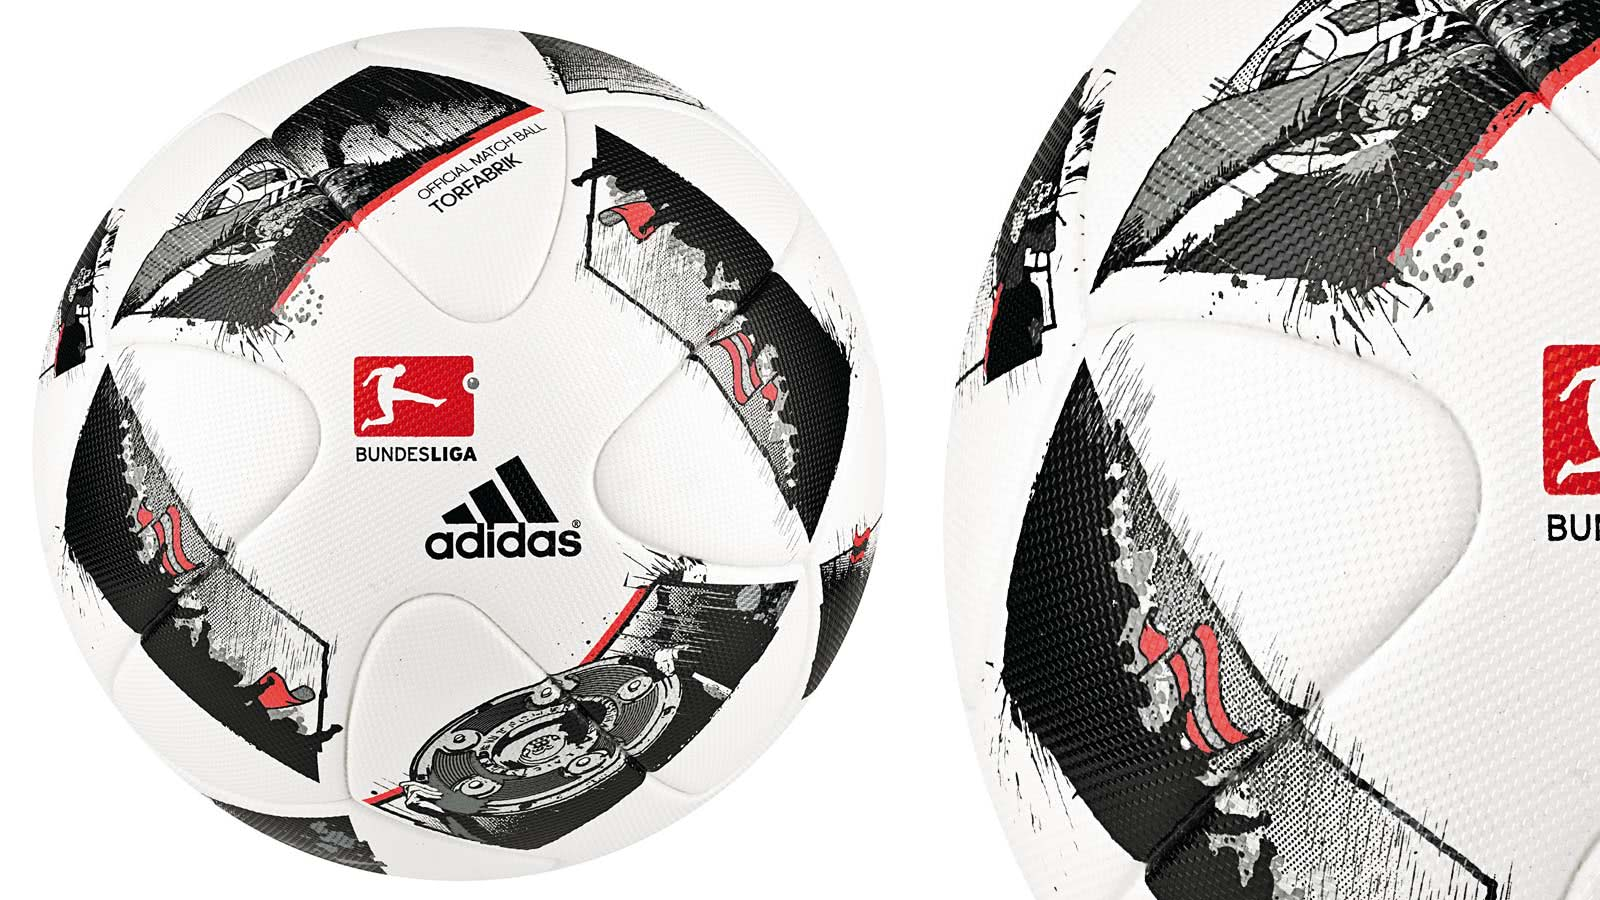 best cheap new styles on wholesale Adidas Torfabrik 2016/2017 der Bundesliga Ball